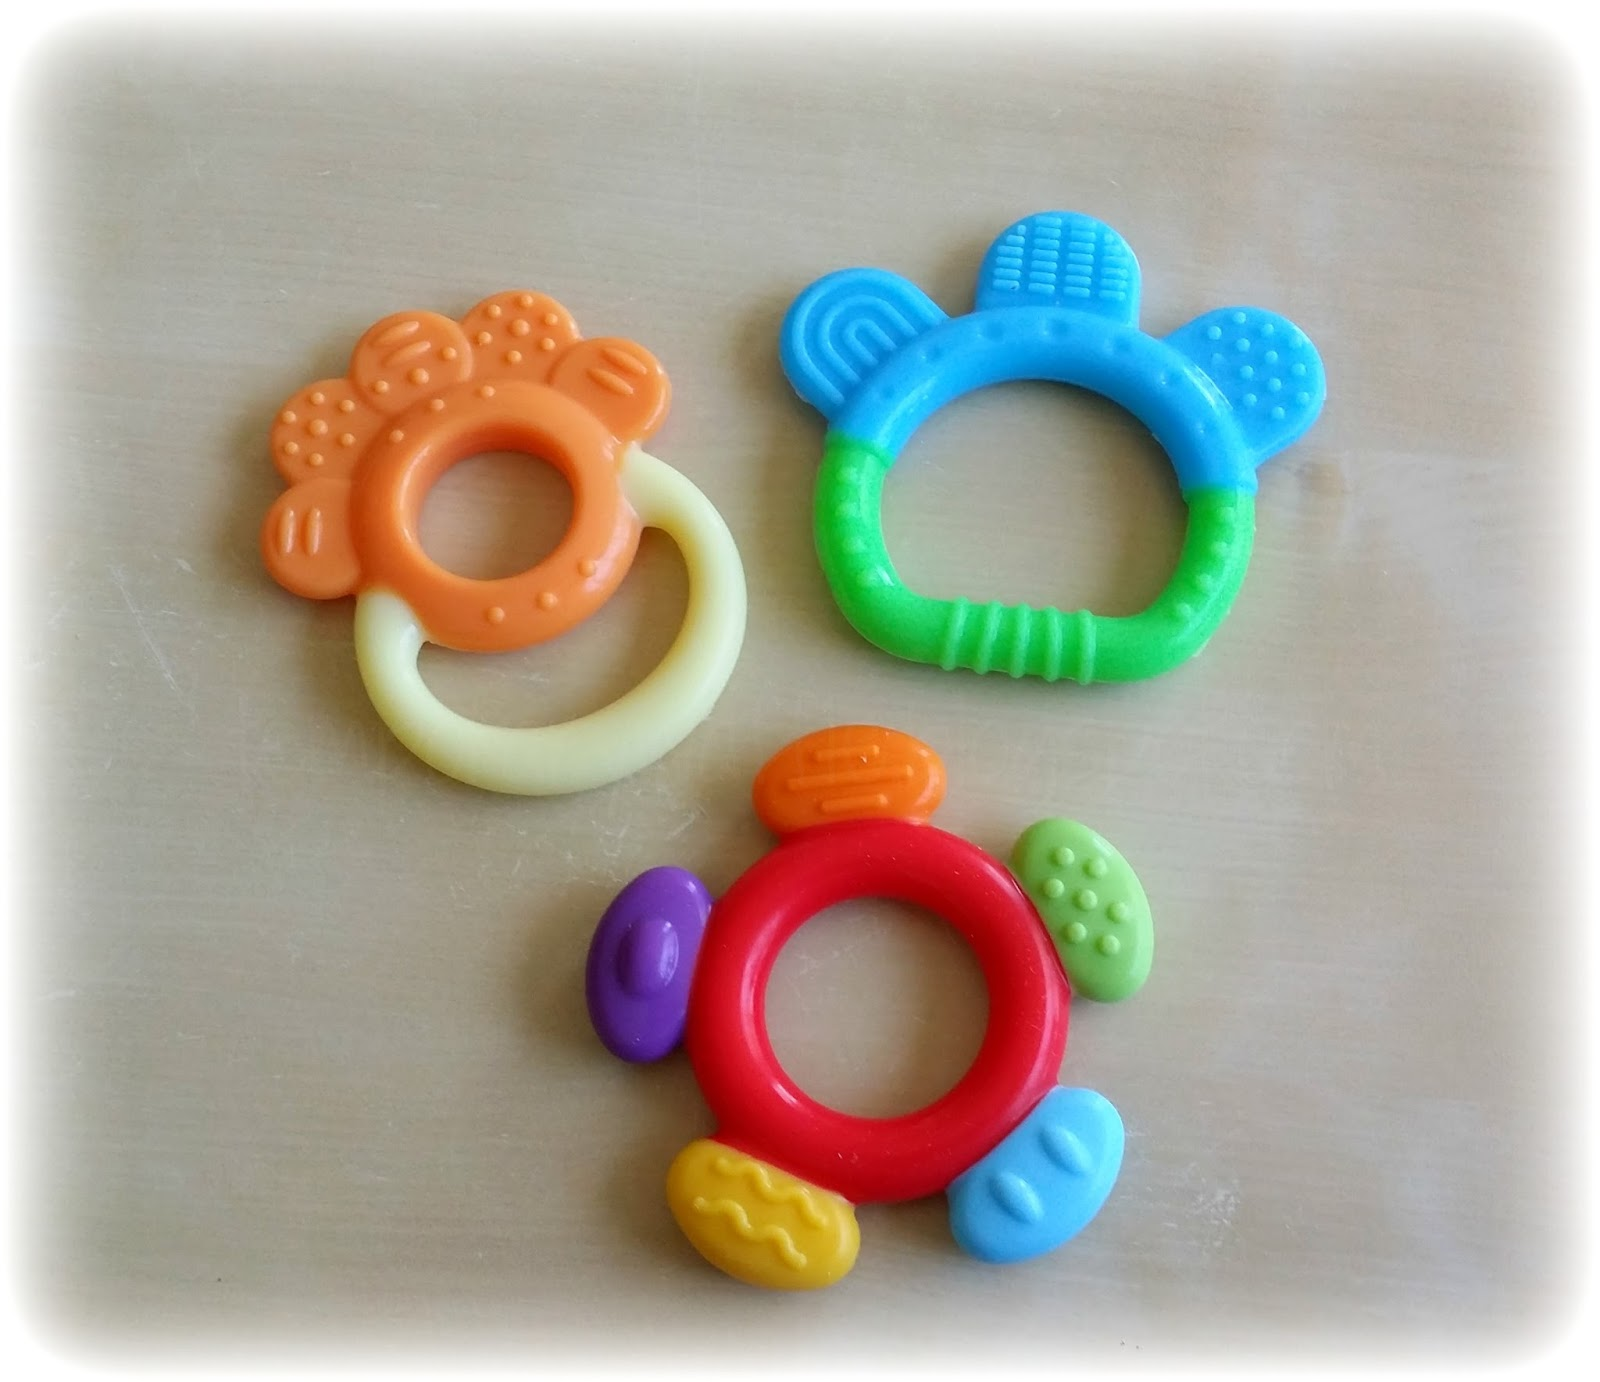 Temporary Waffle Colorful and Fun Baby Teething Reliever Toys